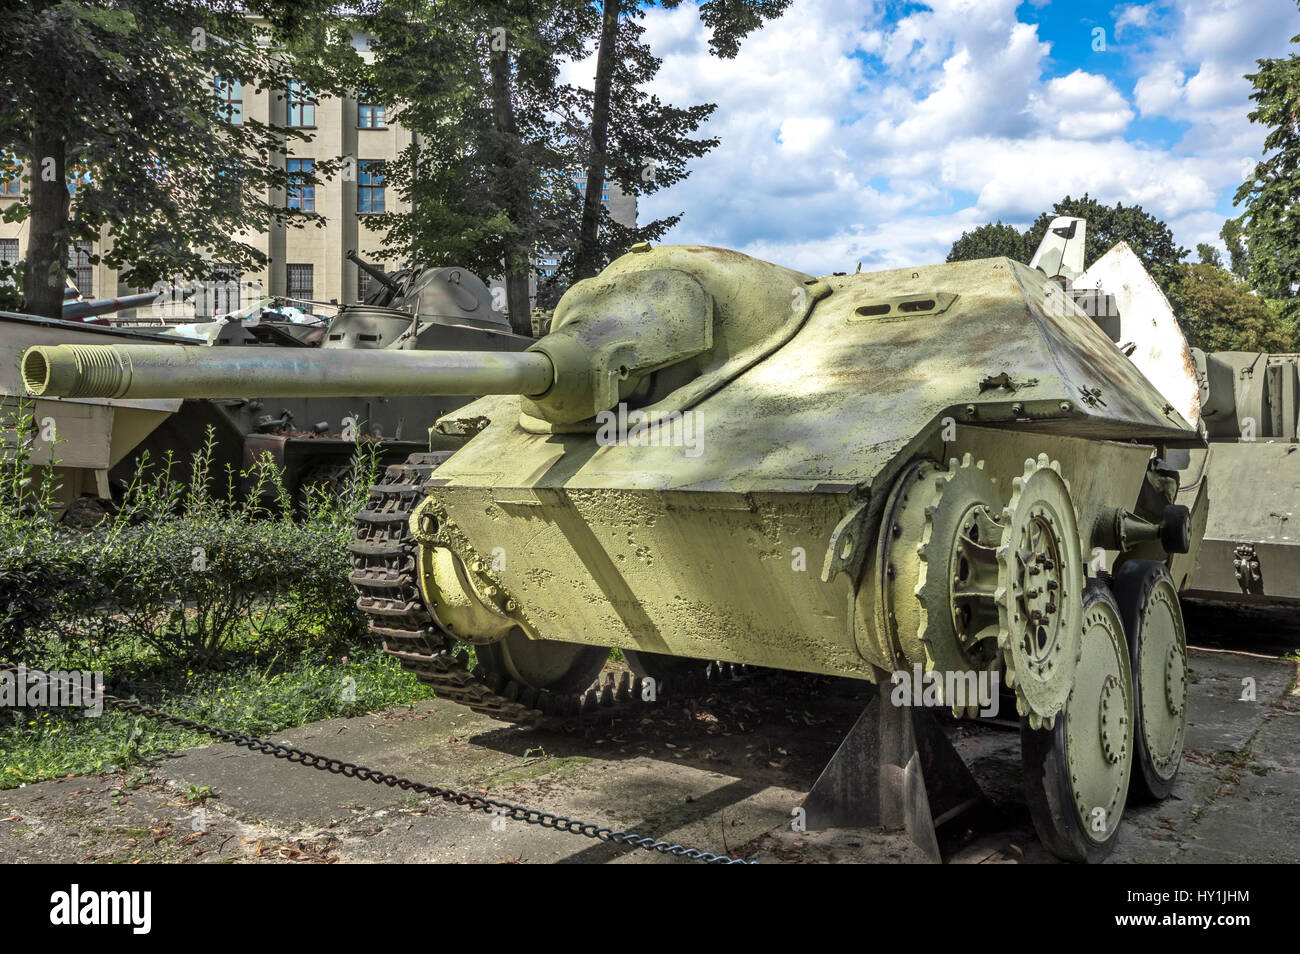 German motorized light tank destroyer Jagdpanzer 38 (T) or Sd.Kfz. 138/2 - Museum of the Polish Army, Warsaw, Poland - Stock Image